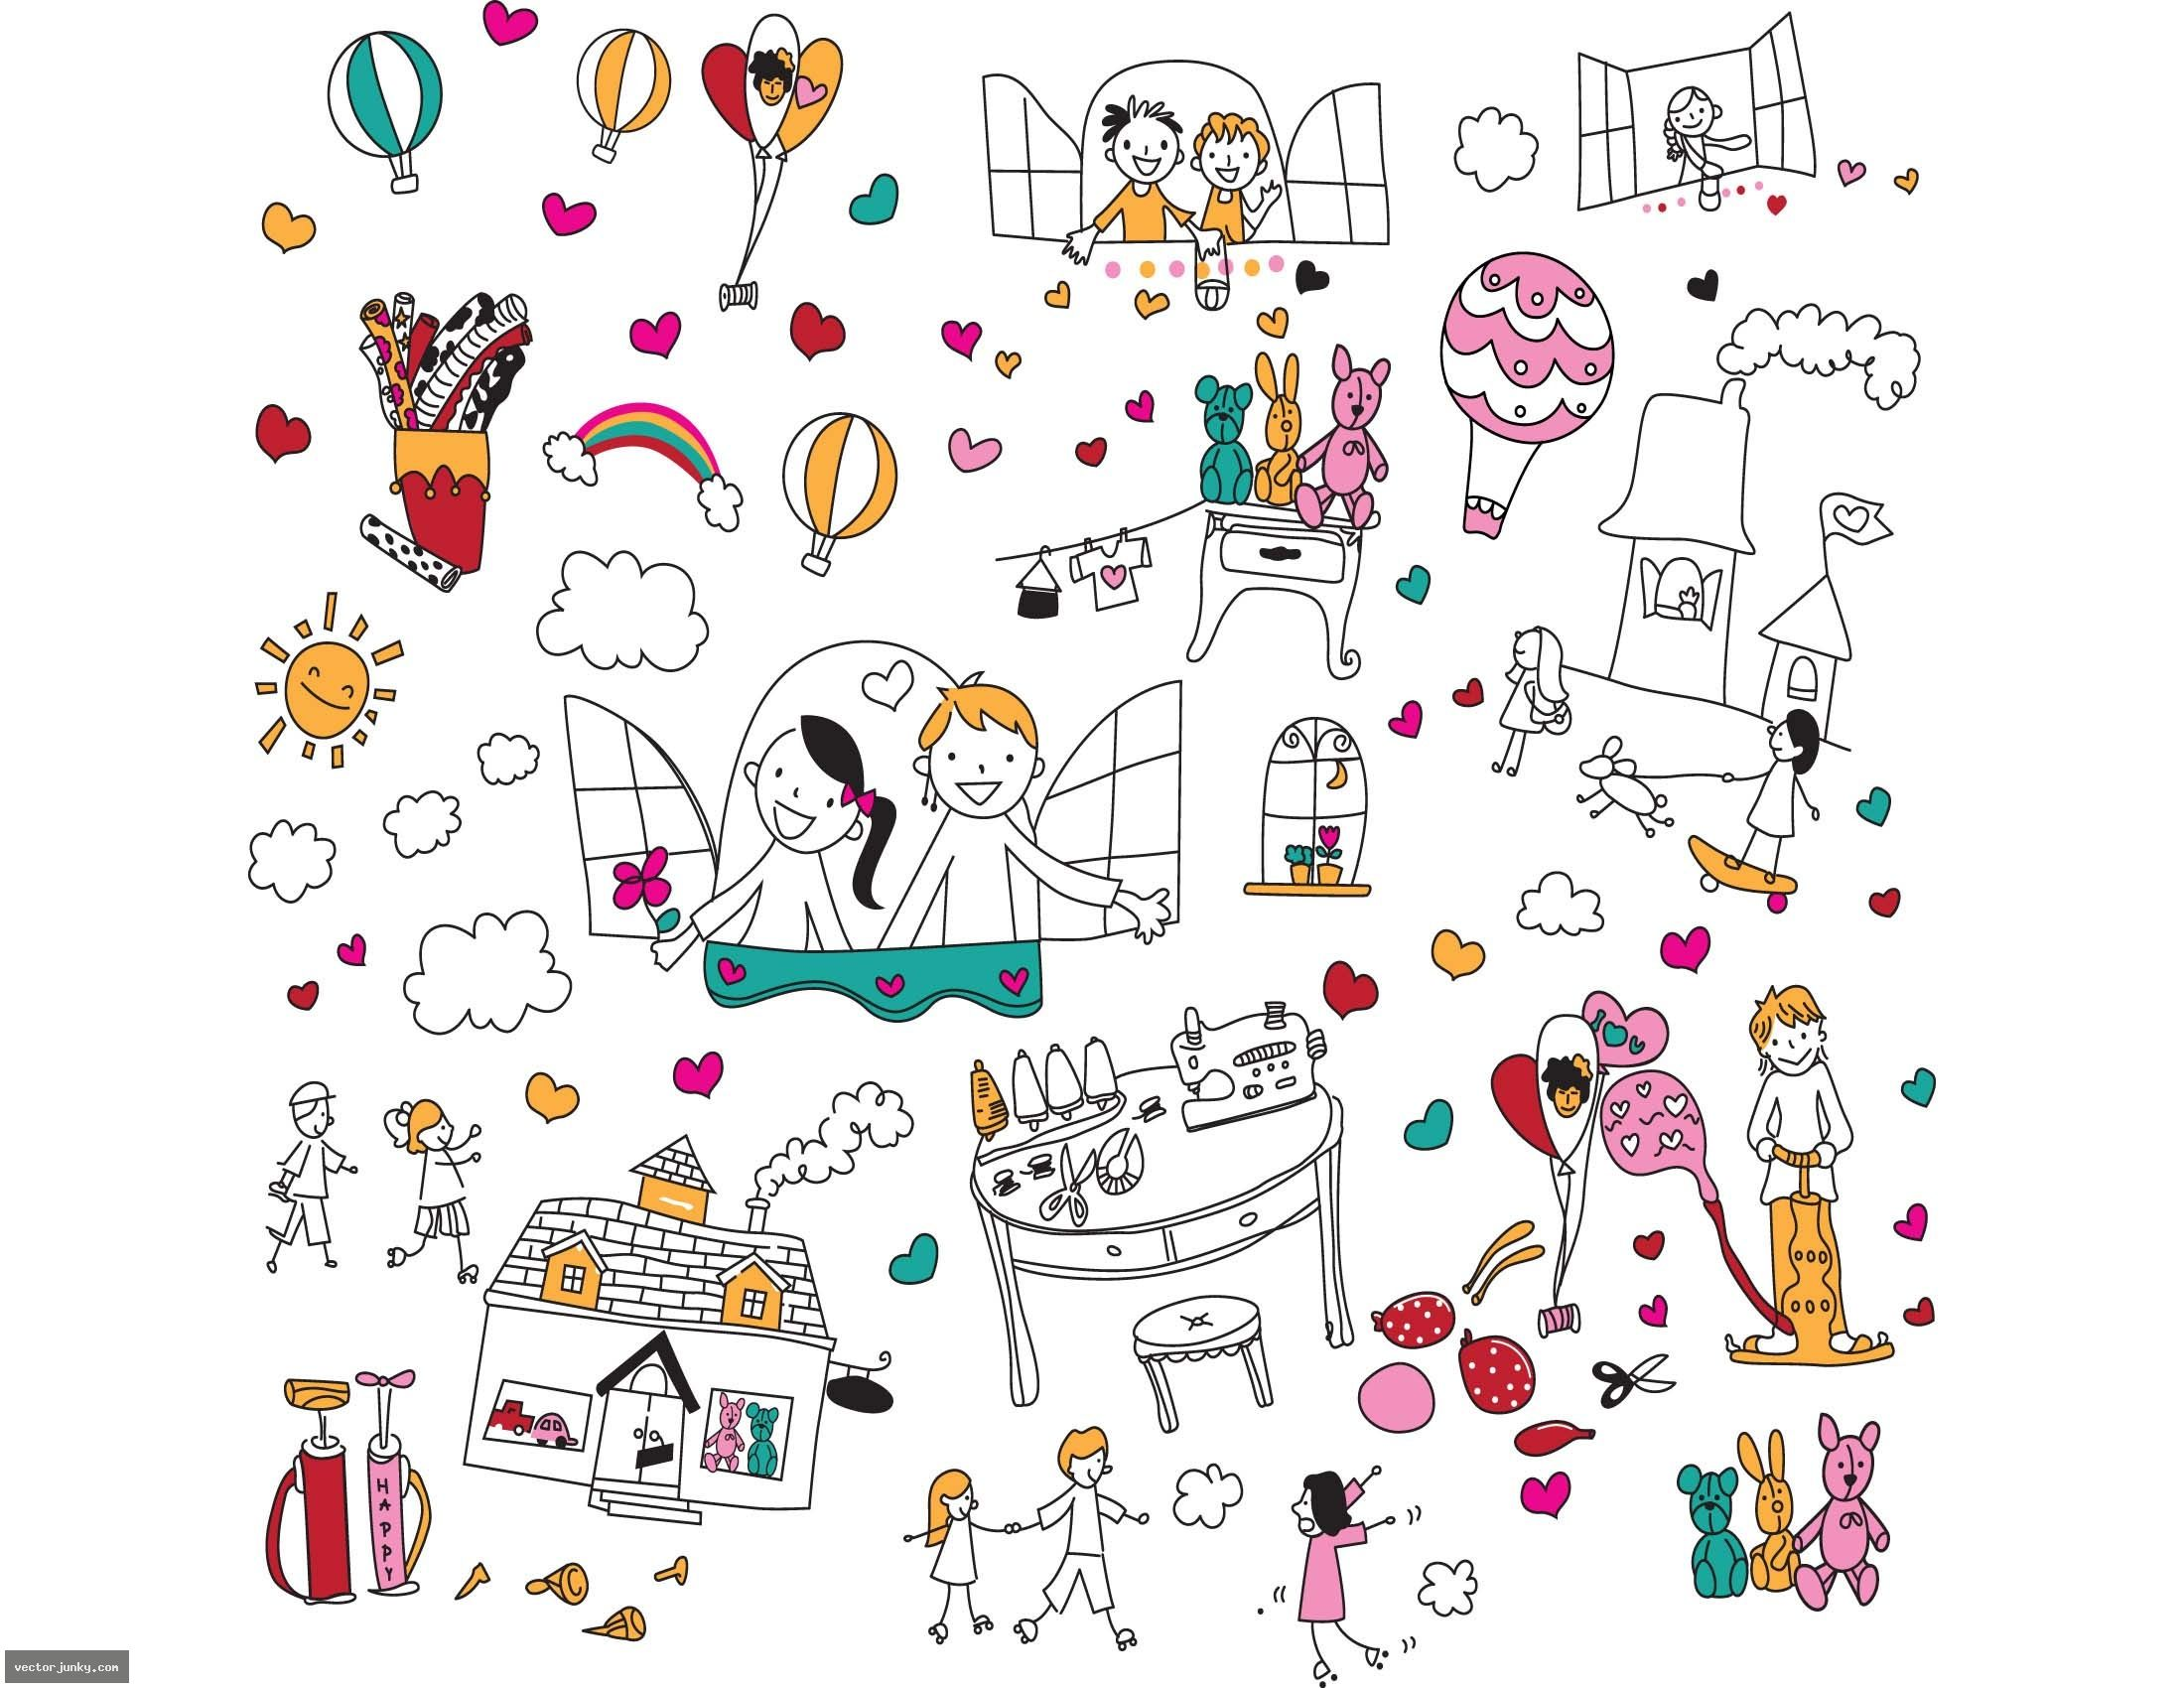 Free Vector Download » doodle. vectorjunky is an index of Free ...